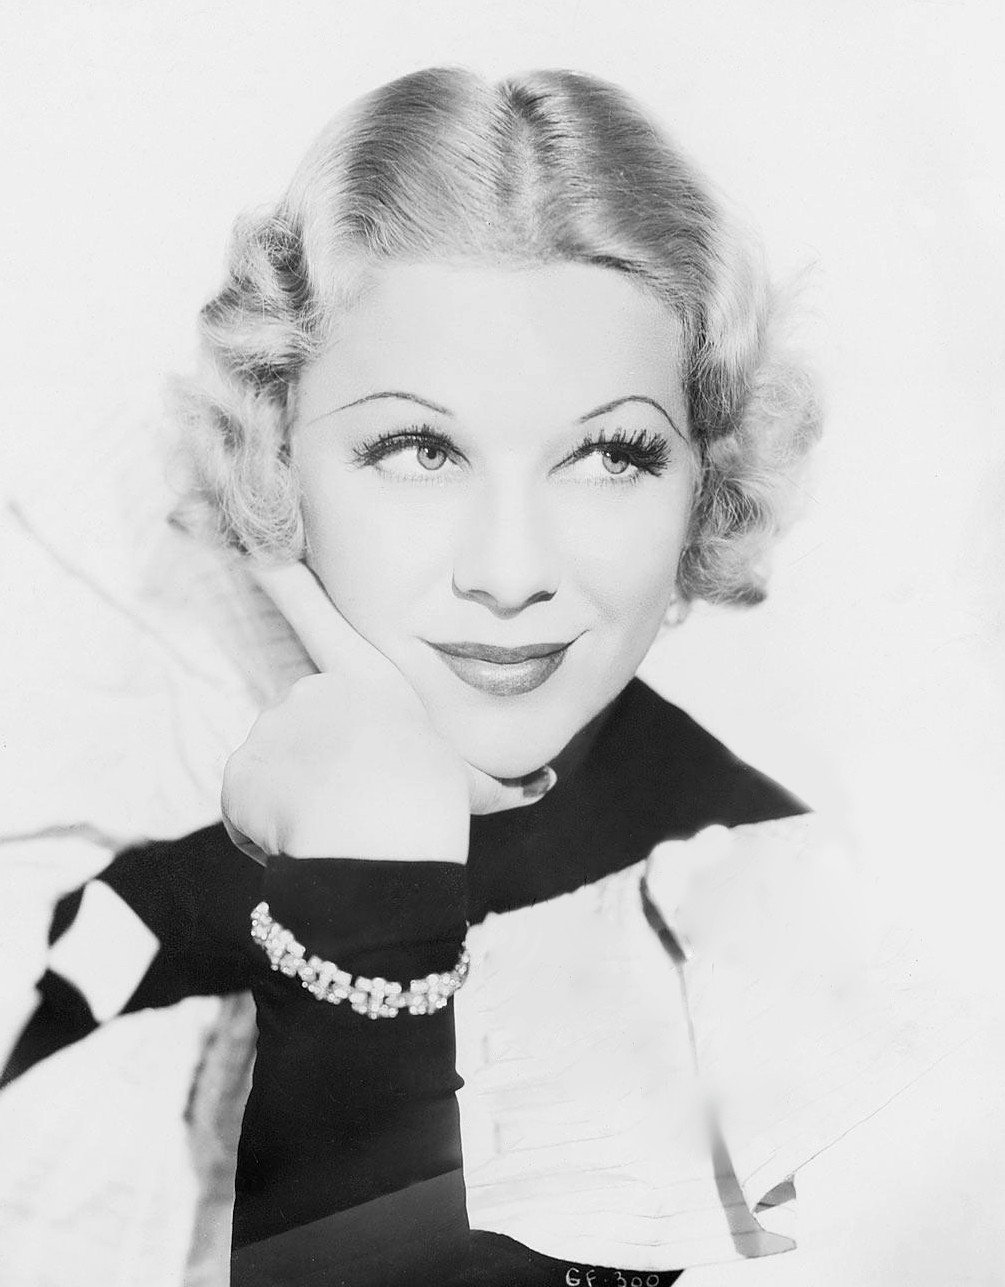 glenda farrell photosglenda farrell one tree hill, glenda farrell, гленда фаррелл, glenda farrell oth, glenda farrell actress, glenda farrell imdb, glenda farrell elvis, glenda farrell photos, glenda farrell coldwell banker, glenda farrell facebook, glenda farrell images, glenda farrell grave, glenda farrell smoking, glenda farrell measurements, glenda farrell bewitched, glenda farrell youtube, glenda farrell book, glenda farrell feet, glenda farrell torchy blane, glenda farrell unc